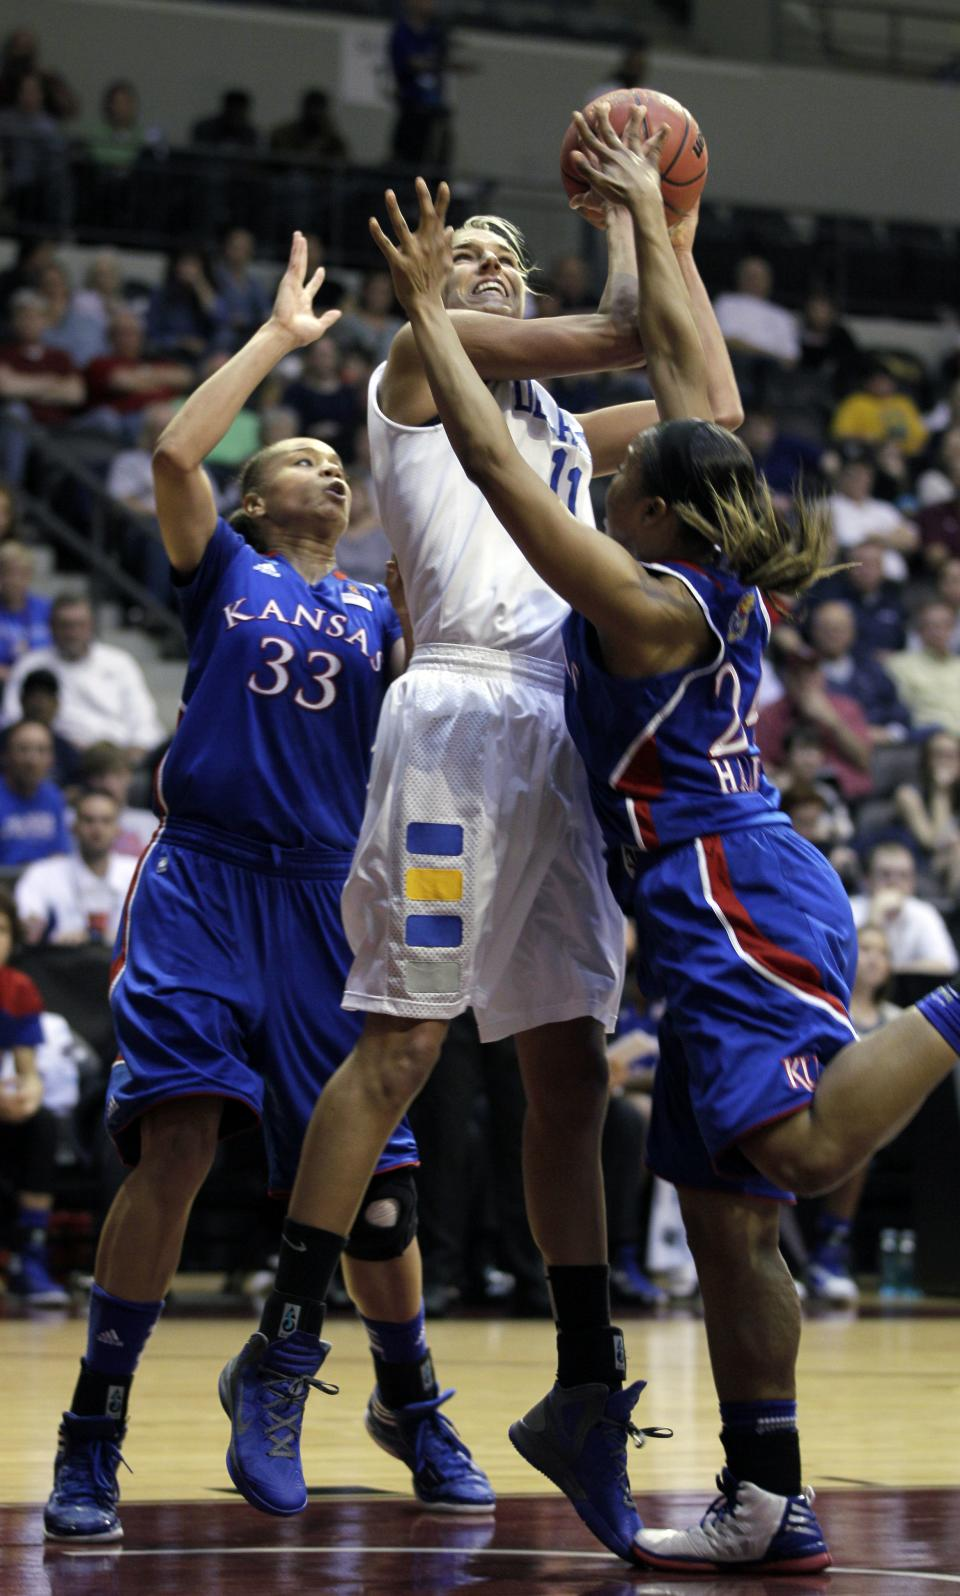 Delaware's Elena Delle Donne (11) is pressured under the basket by Kansas' Tania Jackson (33) and Cece Harper (24) during the first half of an NCAA tournament second-round women's college basketball game in Little Rock, Ark., Tuesday, March 20, 2012. (AP Photo/Danny Johnston)